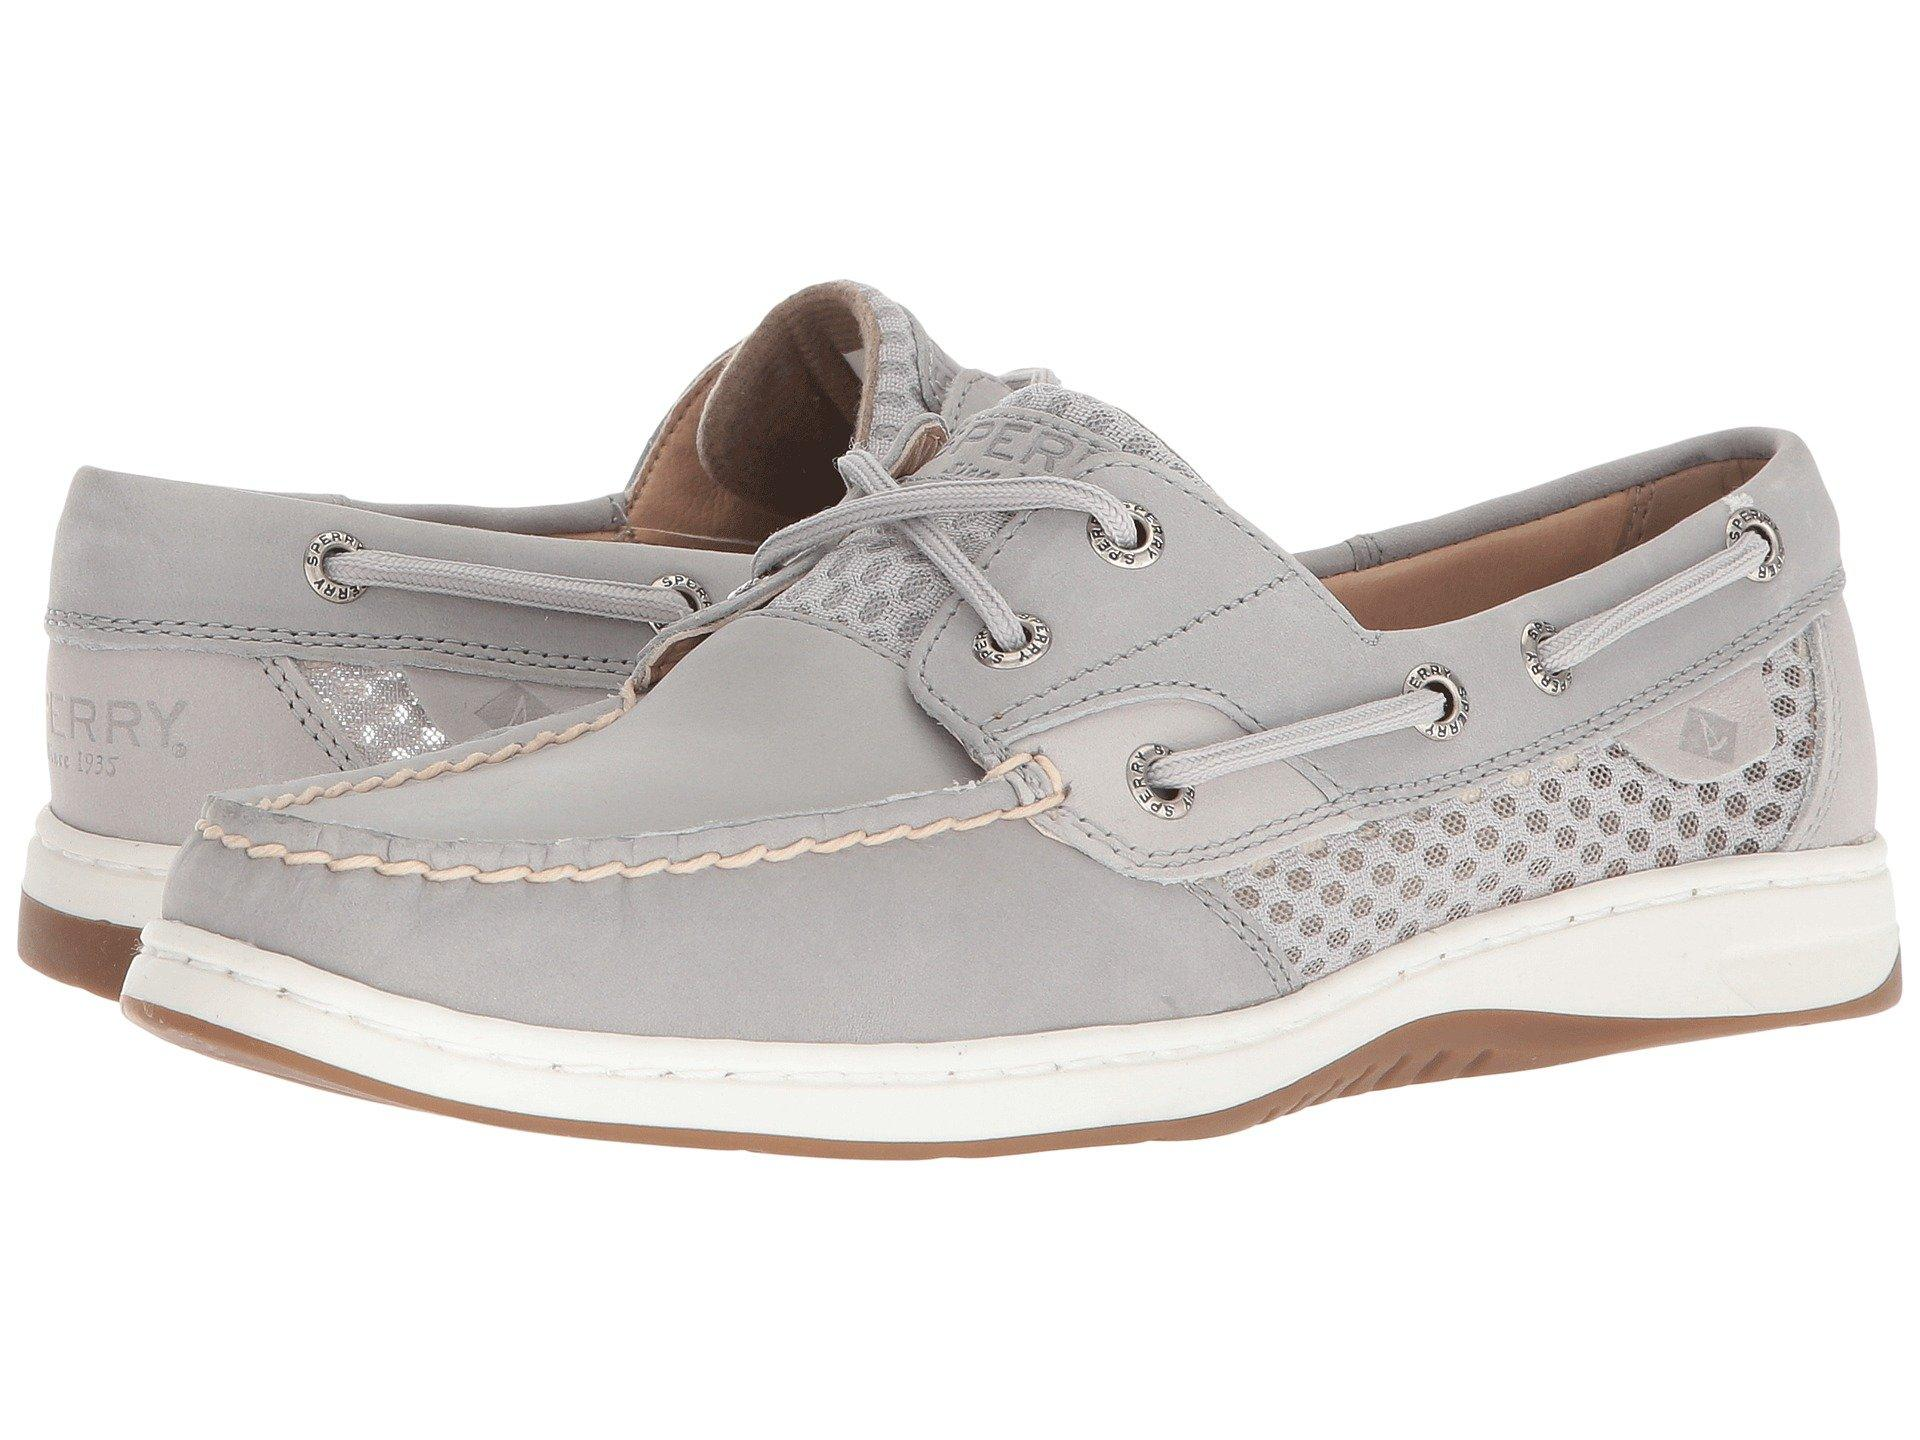 Sperry Bluefish Air Mesh In Grey